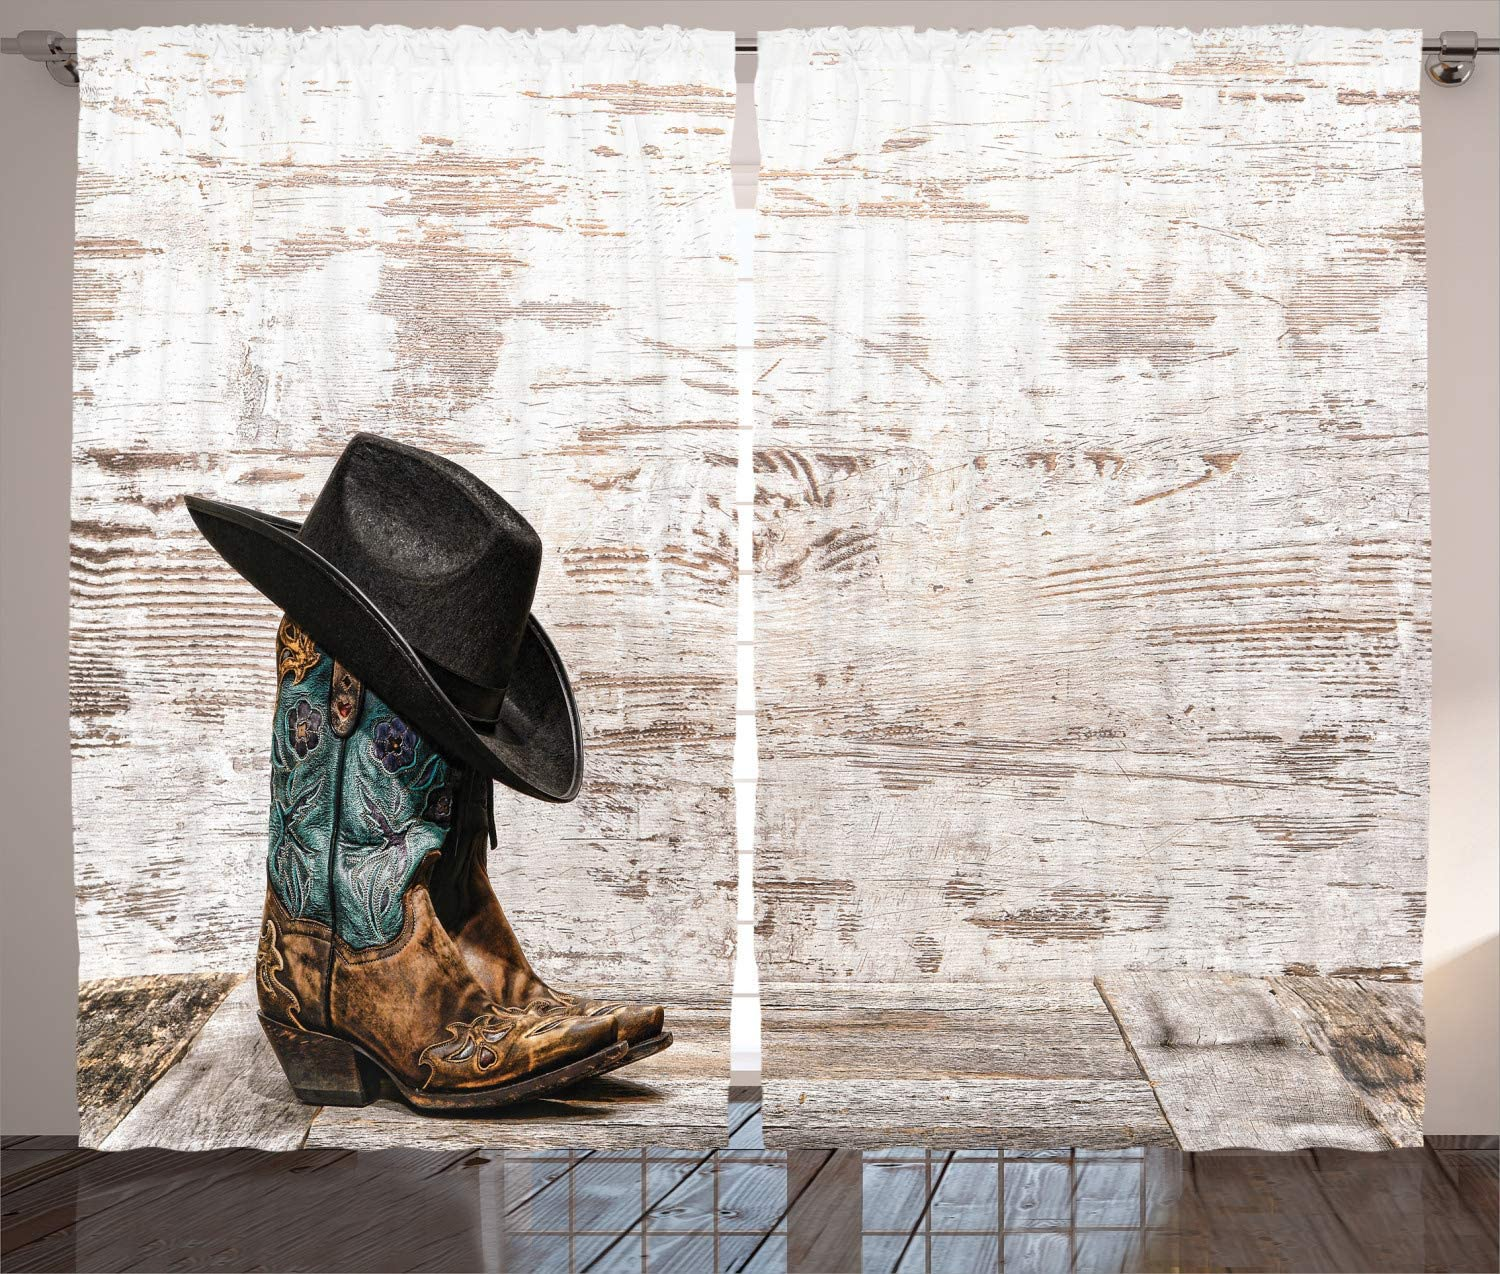 Ambesonne Western Decor Curtains 2 Panel Set, Traditional Rodeo Cowboy Hat and Cowgirl Boots in a Retro Grunge Background Art Photo, Living Room Bedroom Decor, 108 W X 90 L inches, Brown Black